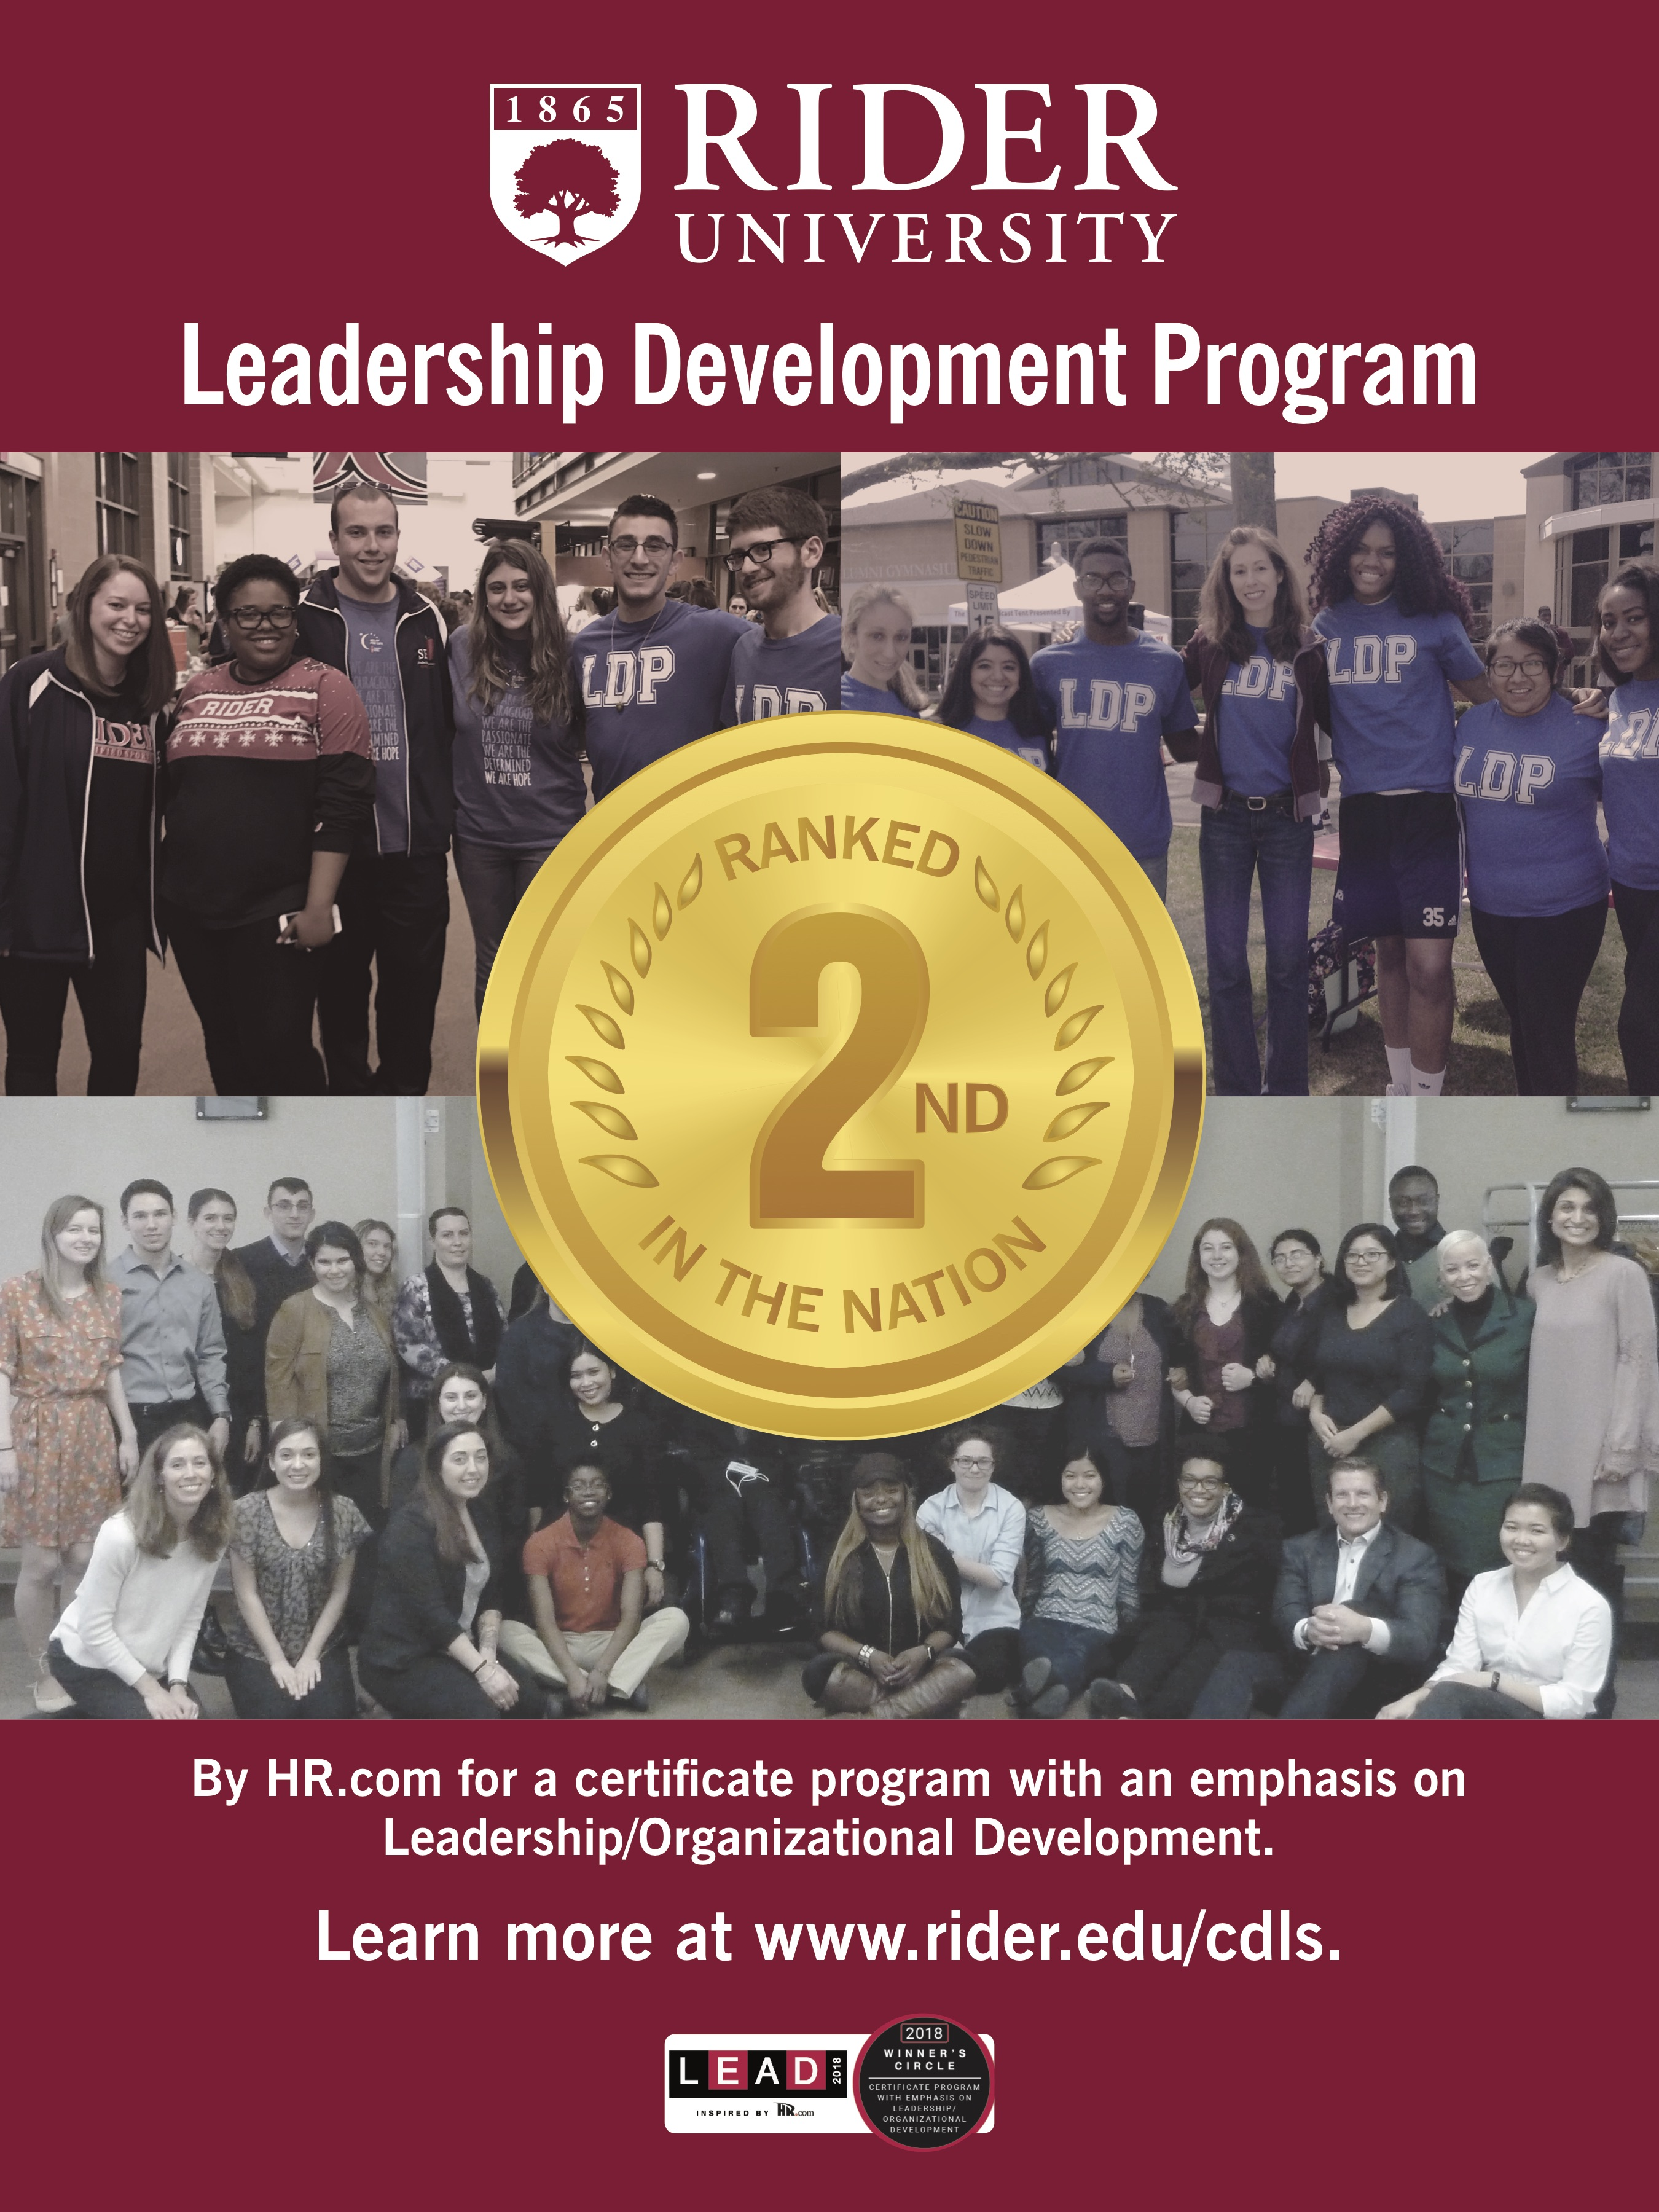 Leadership Development Program Ranked 2nd in the Nation